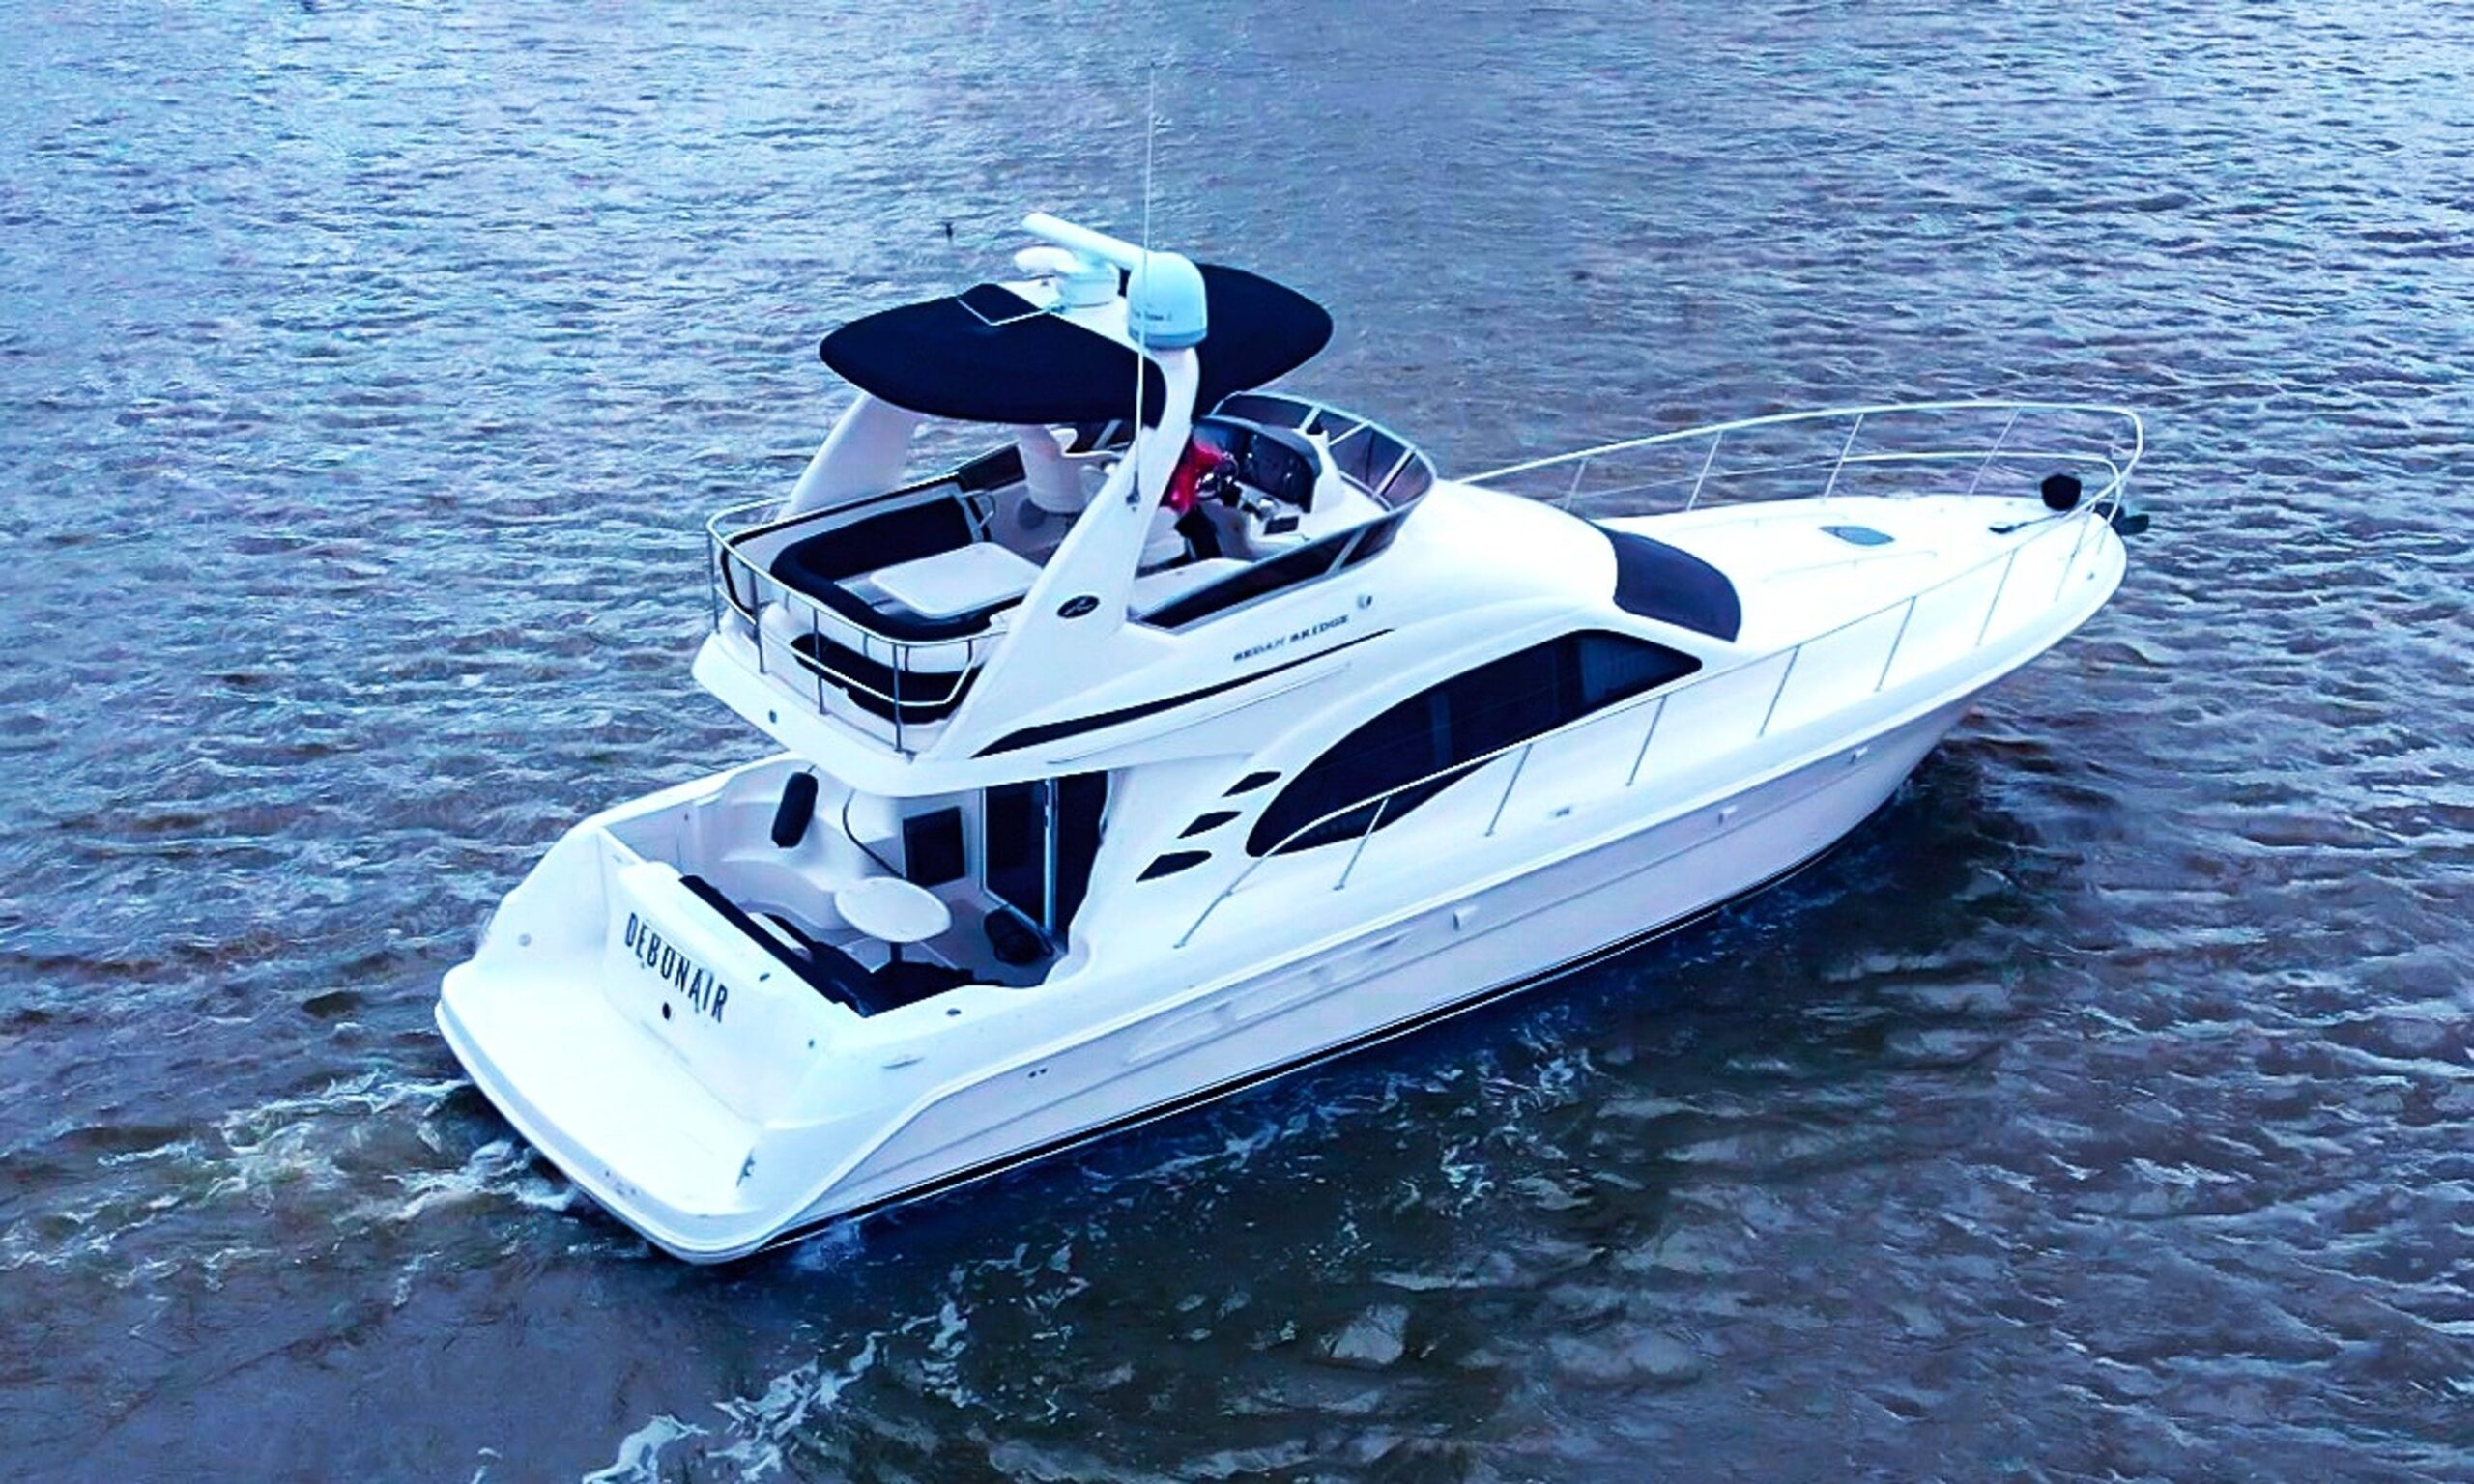 GetMyBoat | Boat Rentals & Yacht Charters Near Me